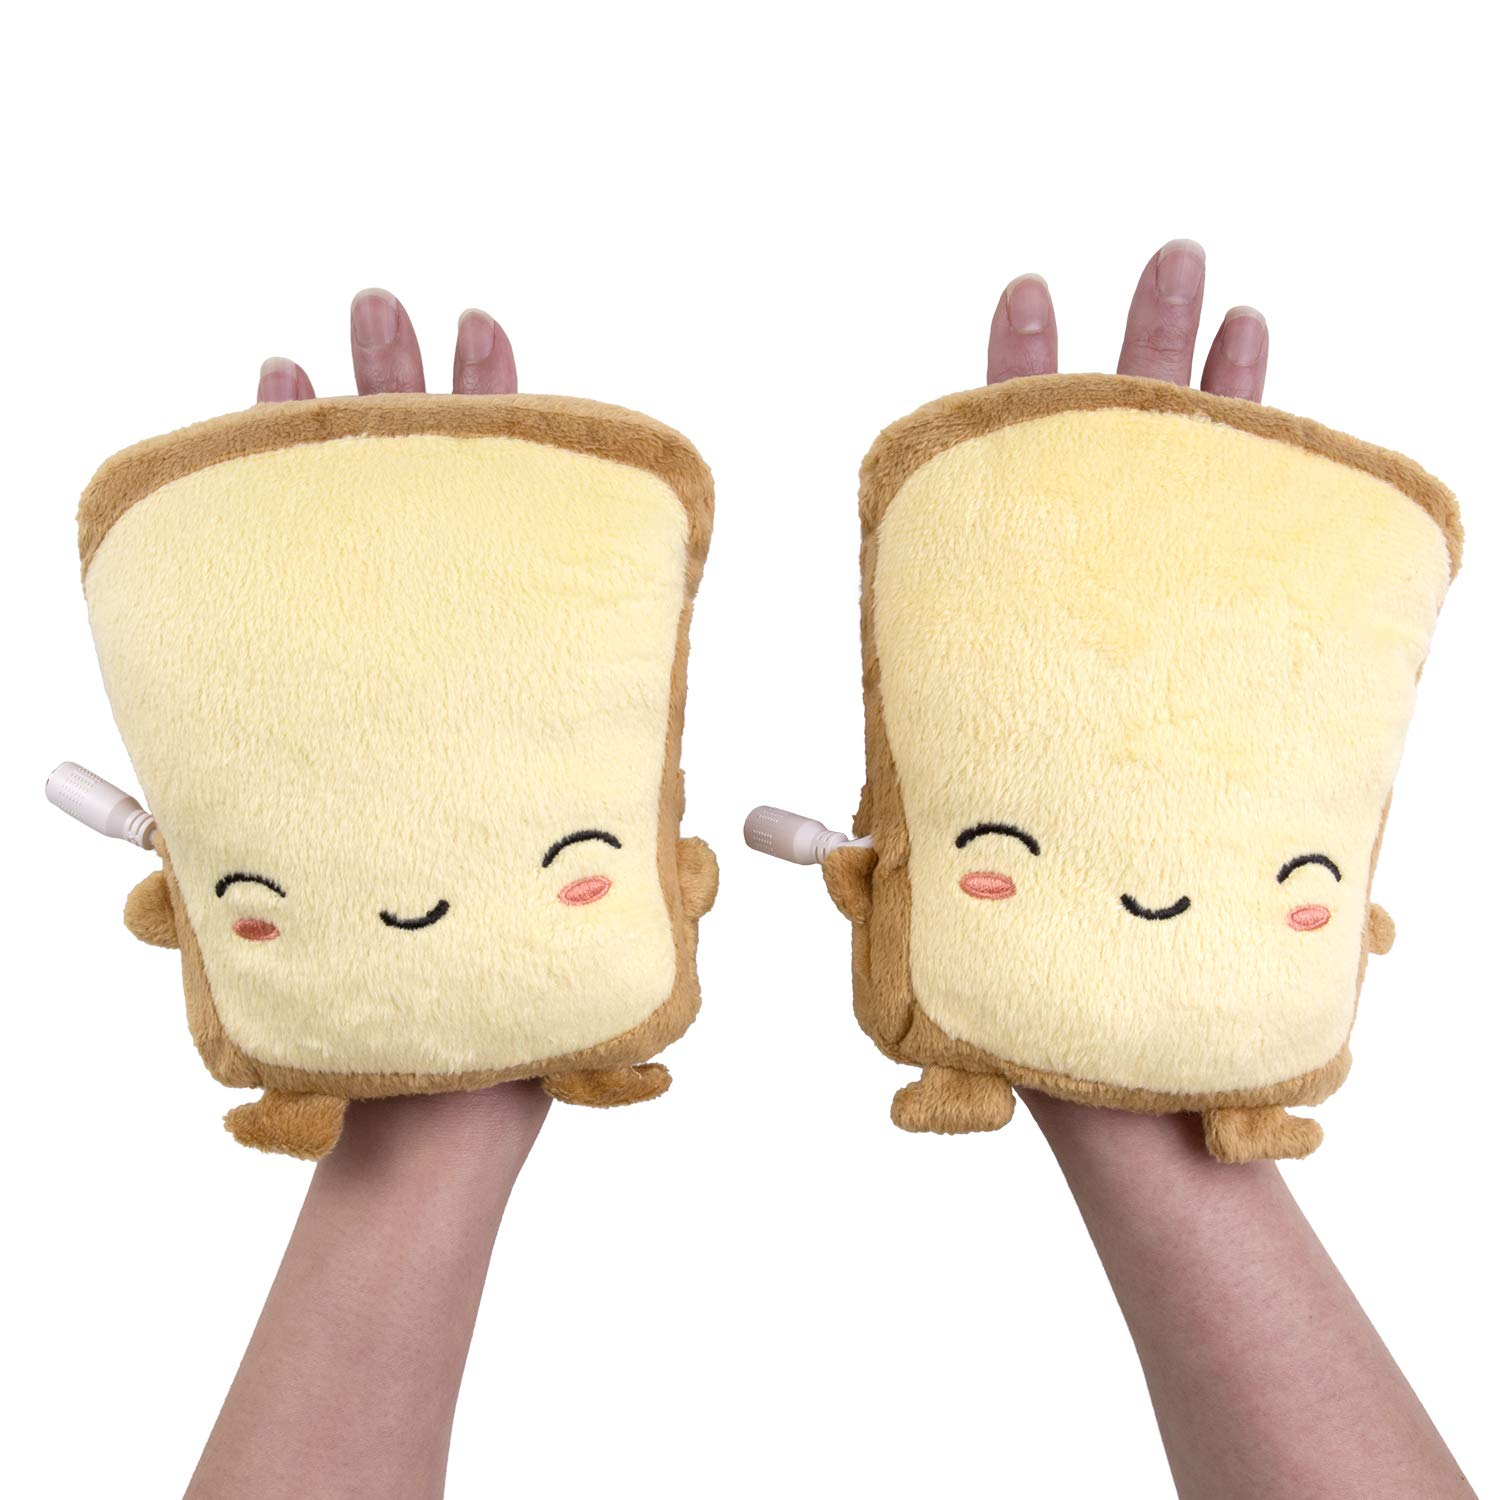 Smoko Toast USB Handwarmers (Butta) by Smoko